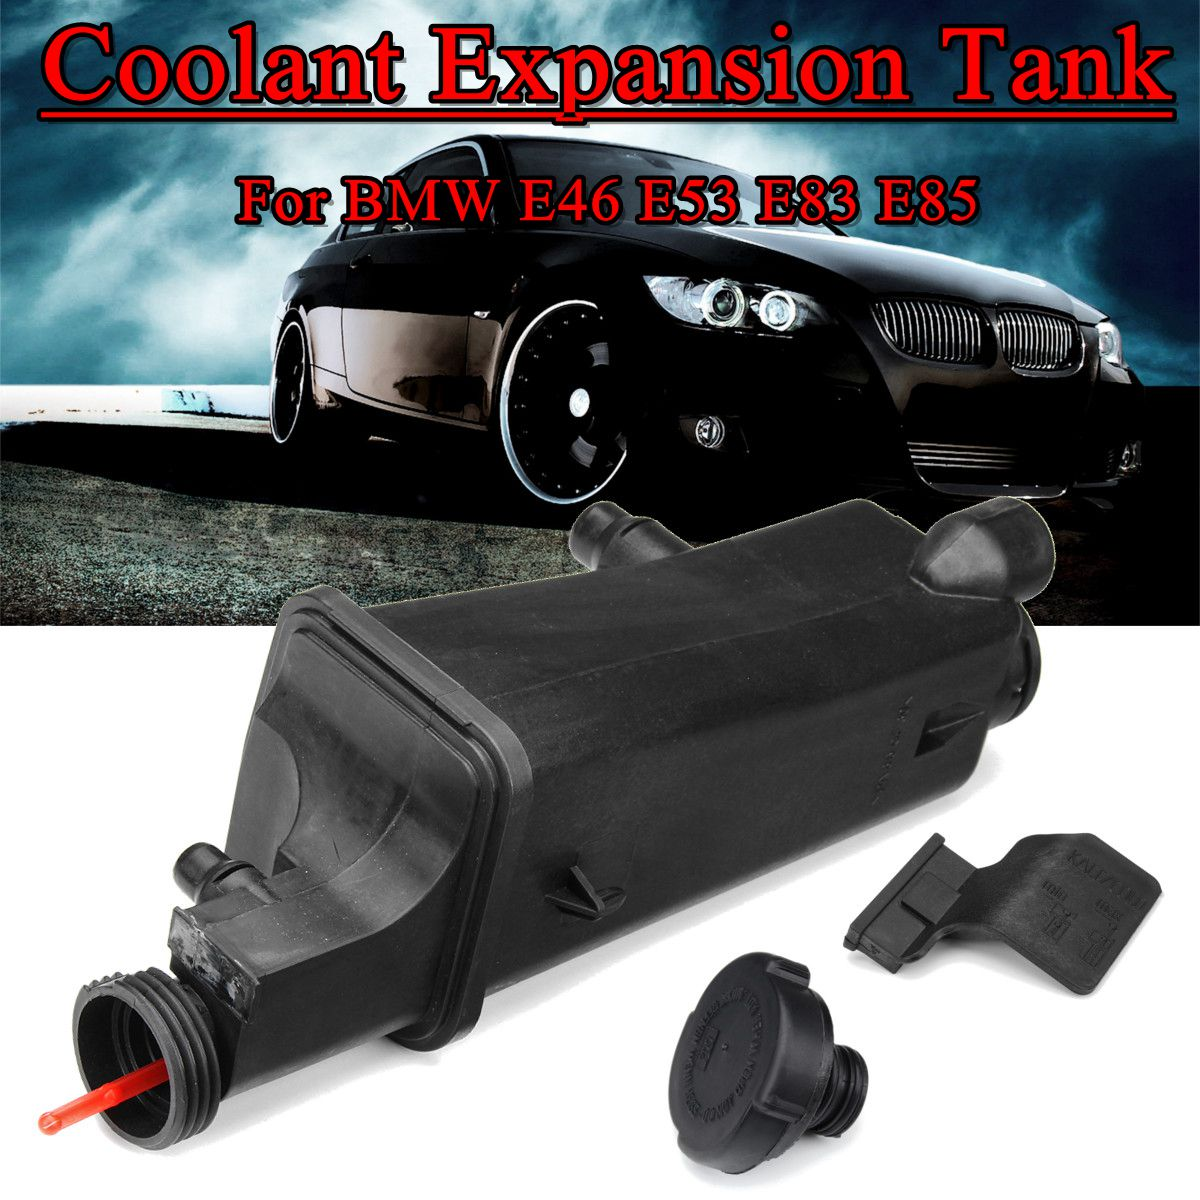 Radiator Coolant Overflow Expansion Tank with Cap For BMW E46 E53 E83 E85 <font><b>17117573781</b></font> image